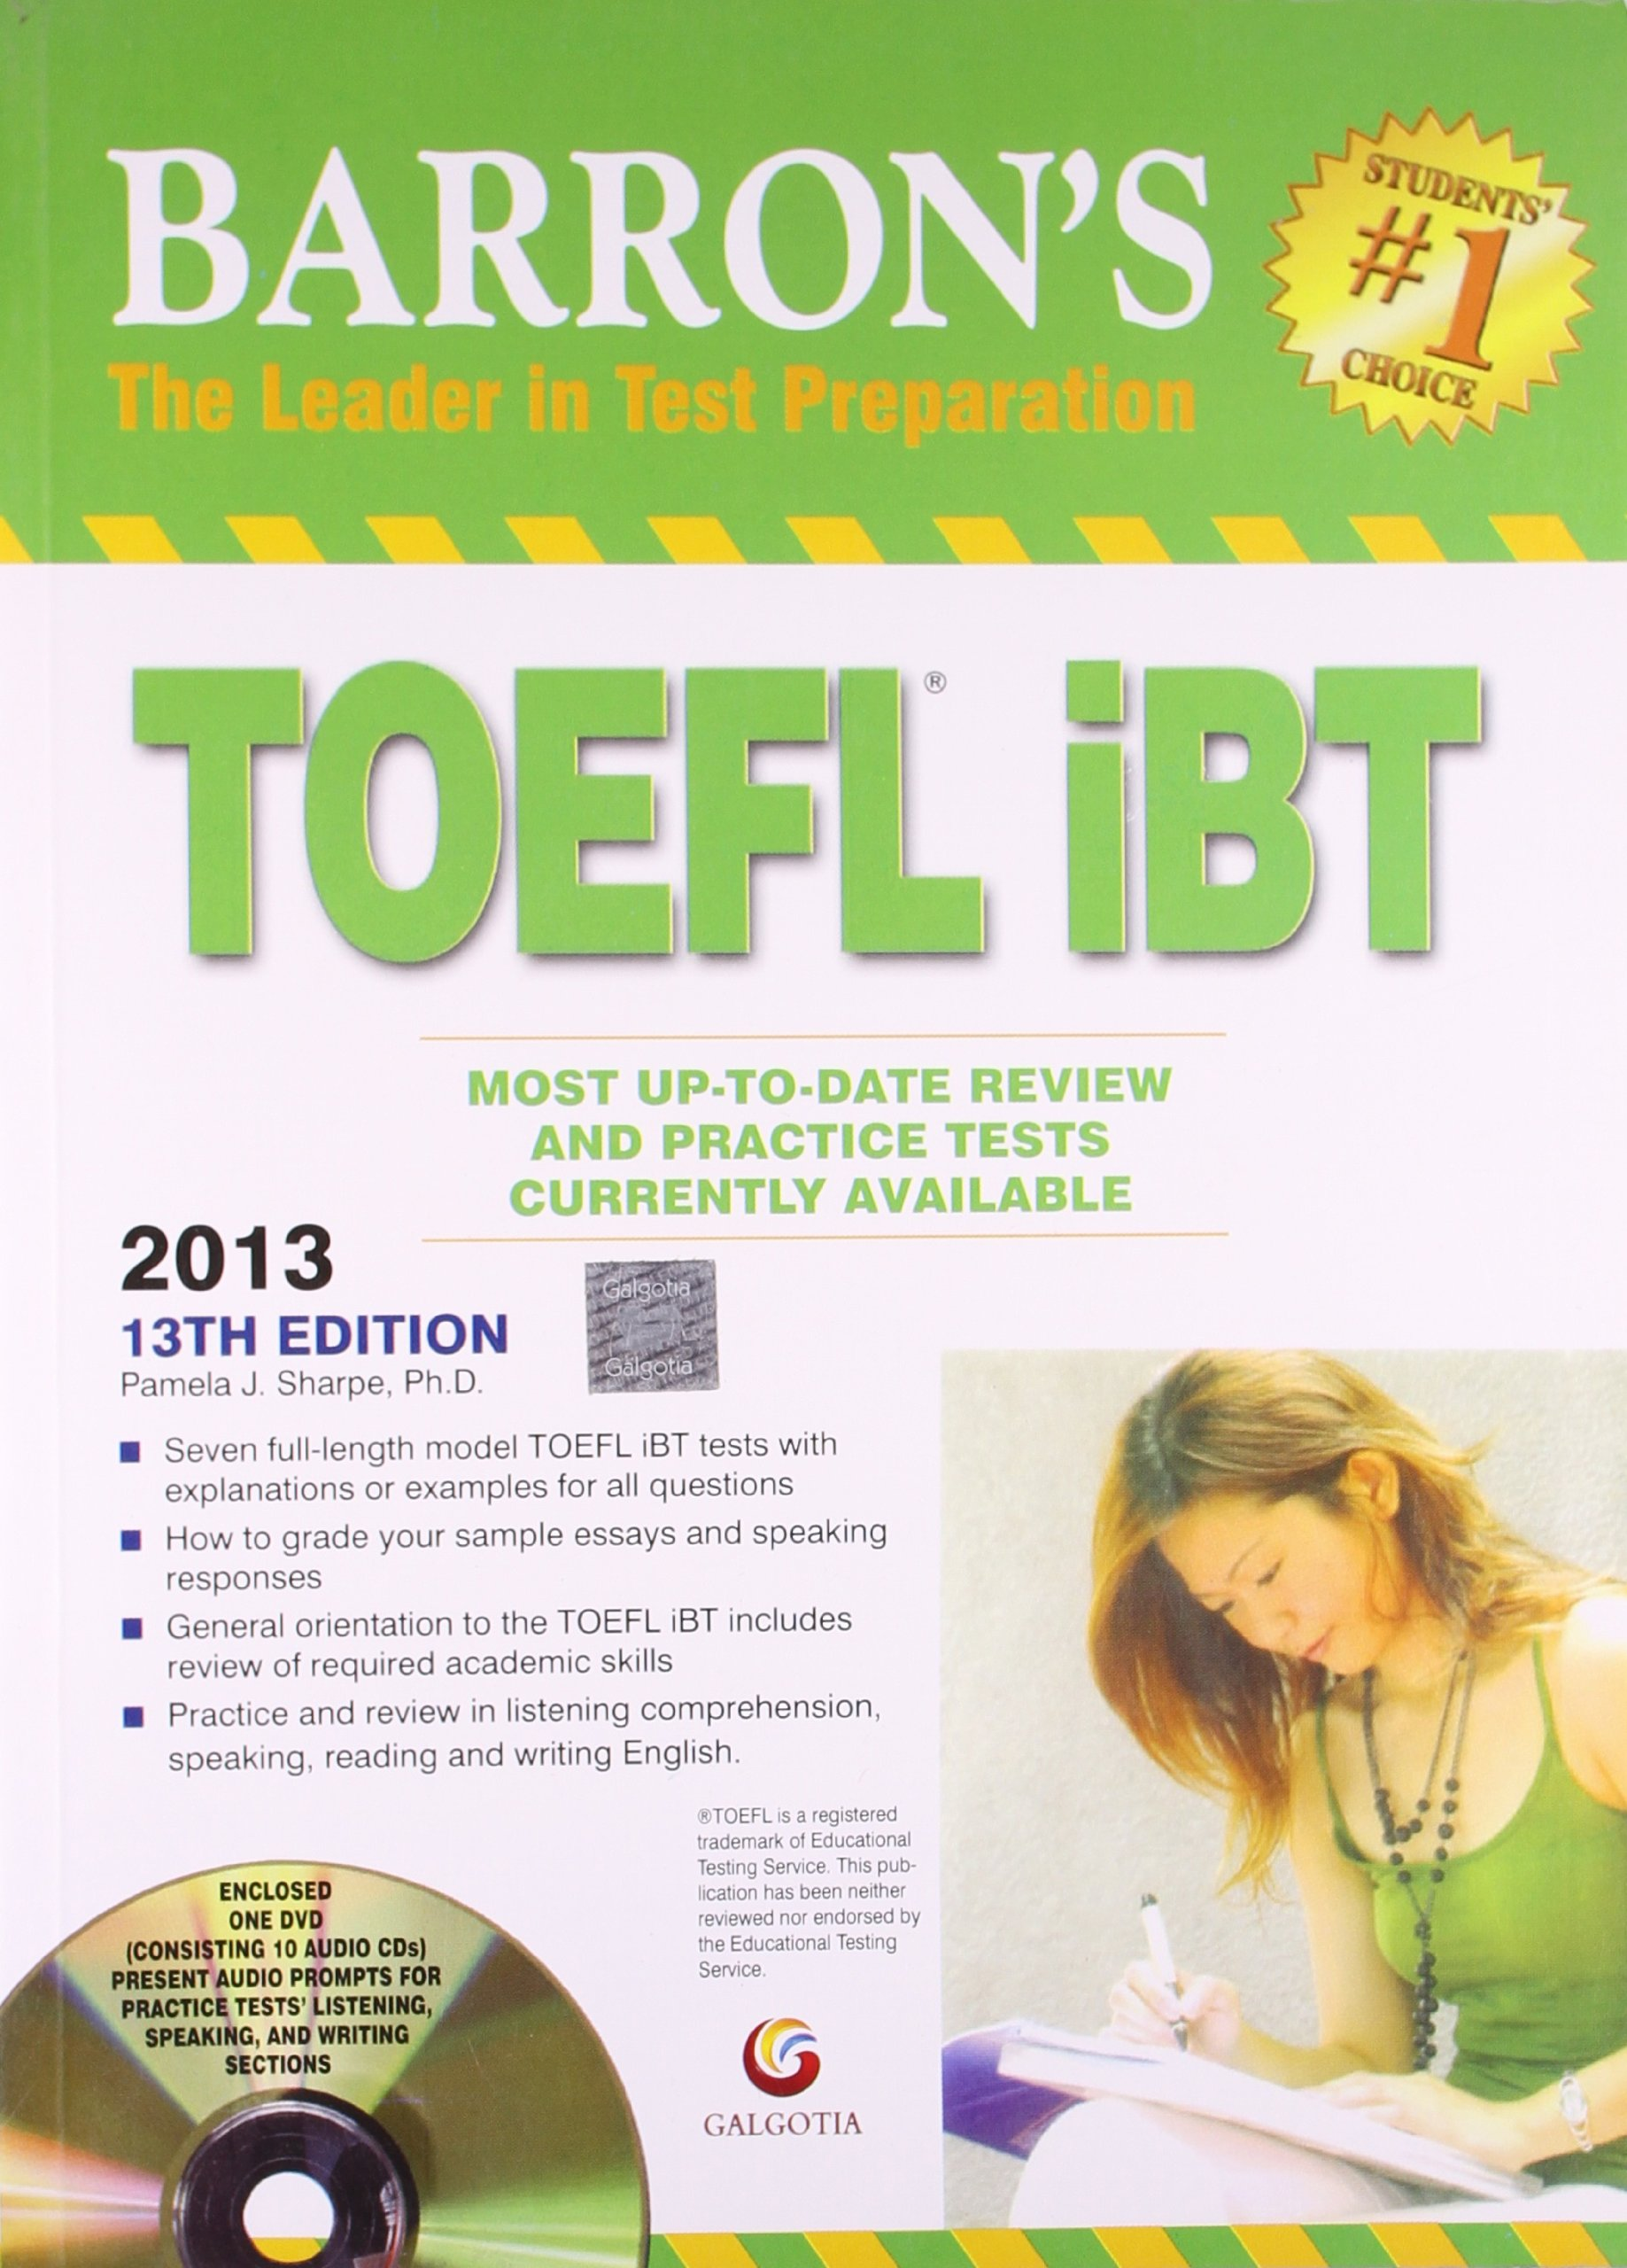 Buy barrons toefl ibt 2013 13th edition book online at low prices buy barrons toefl ibt 2013 13th edition book online at low prices in india barrons toefl ibt 2013 13th edition reviews ratings amazon fandeluxe Choice Image